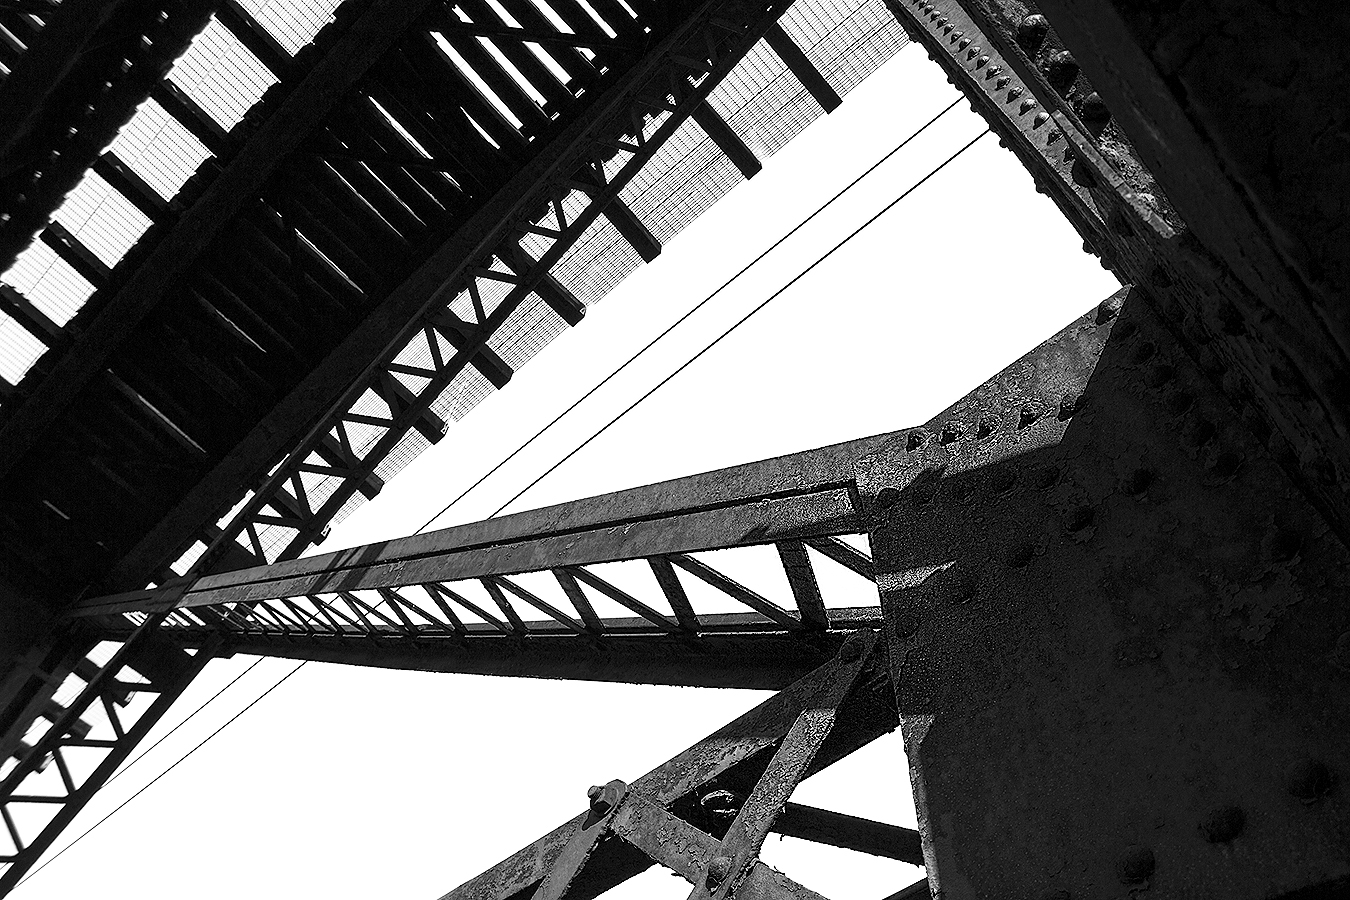 Janelle_Tong_Photography_Tony_Ward_Studio_Individual_Project_UPenn_Penn_Park_Bridges_Railroad_Tracks_Underneath_Rust_Structure_Black_and_White_4